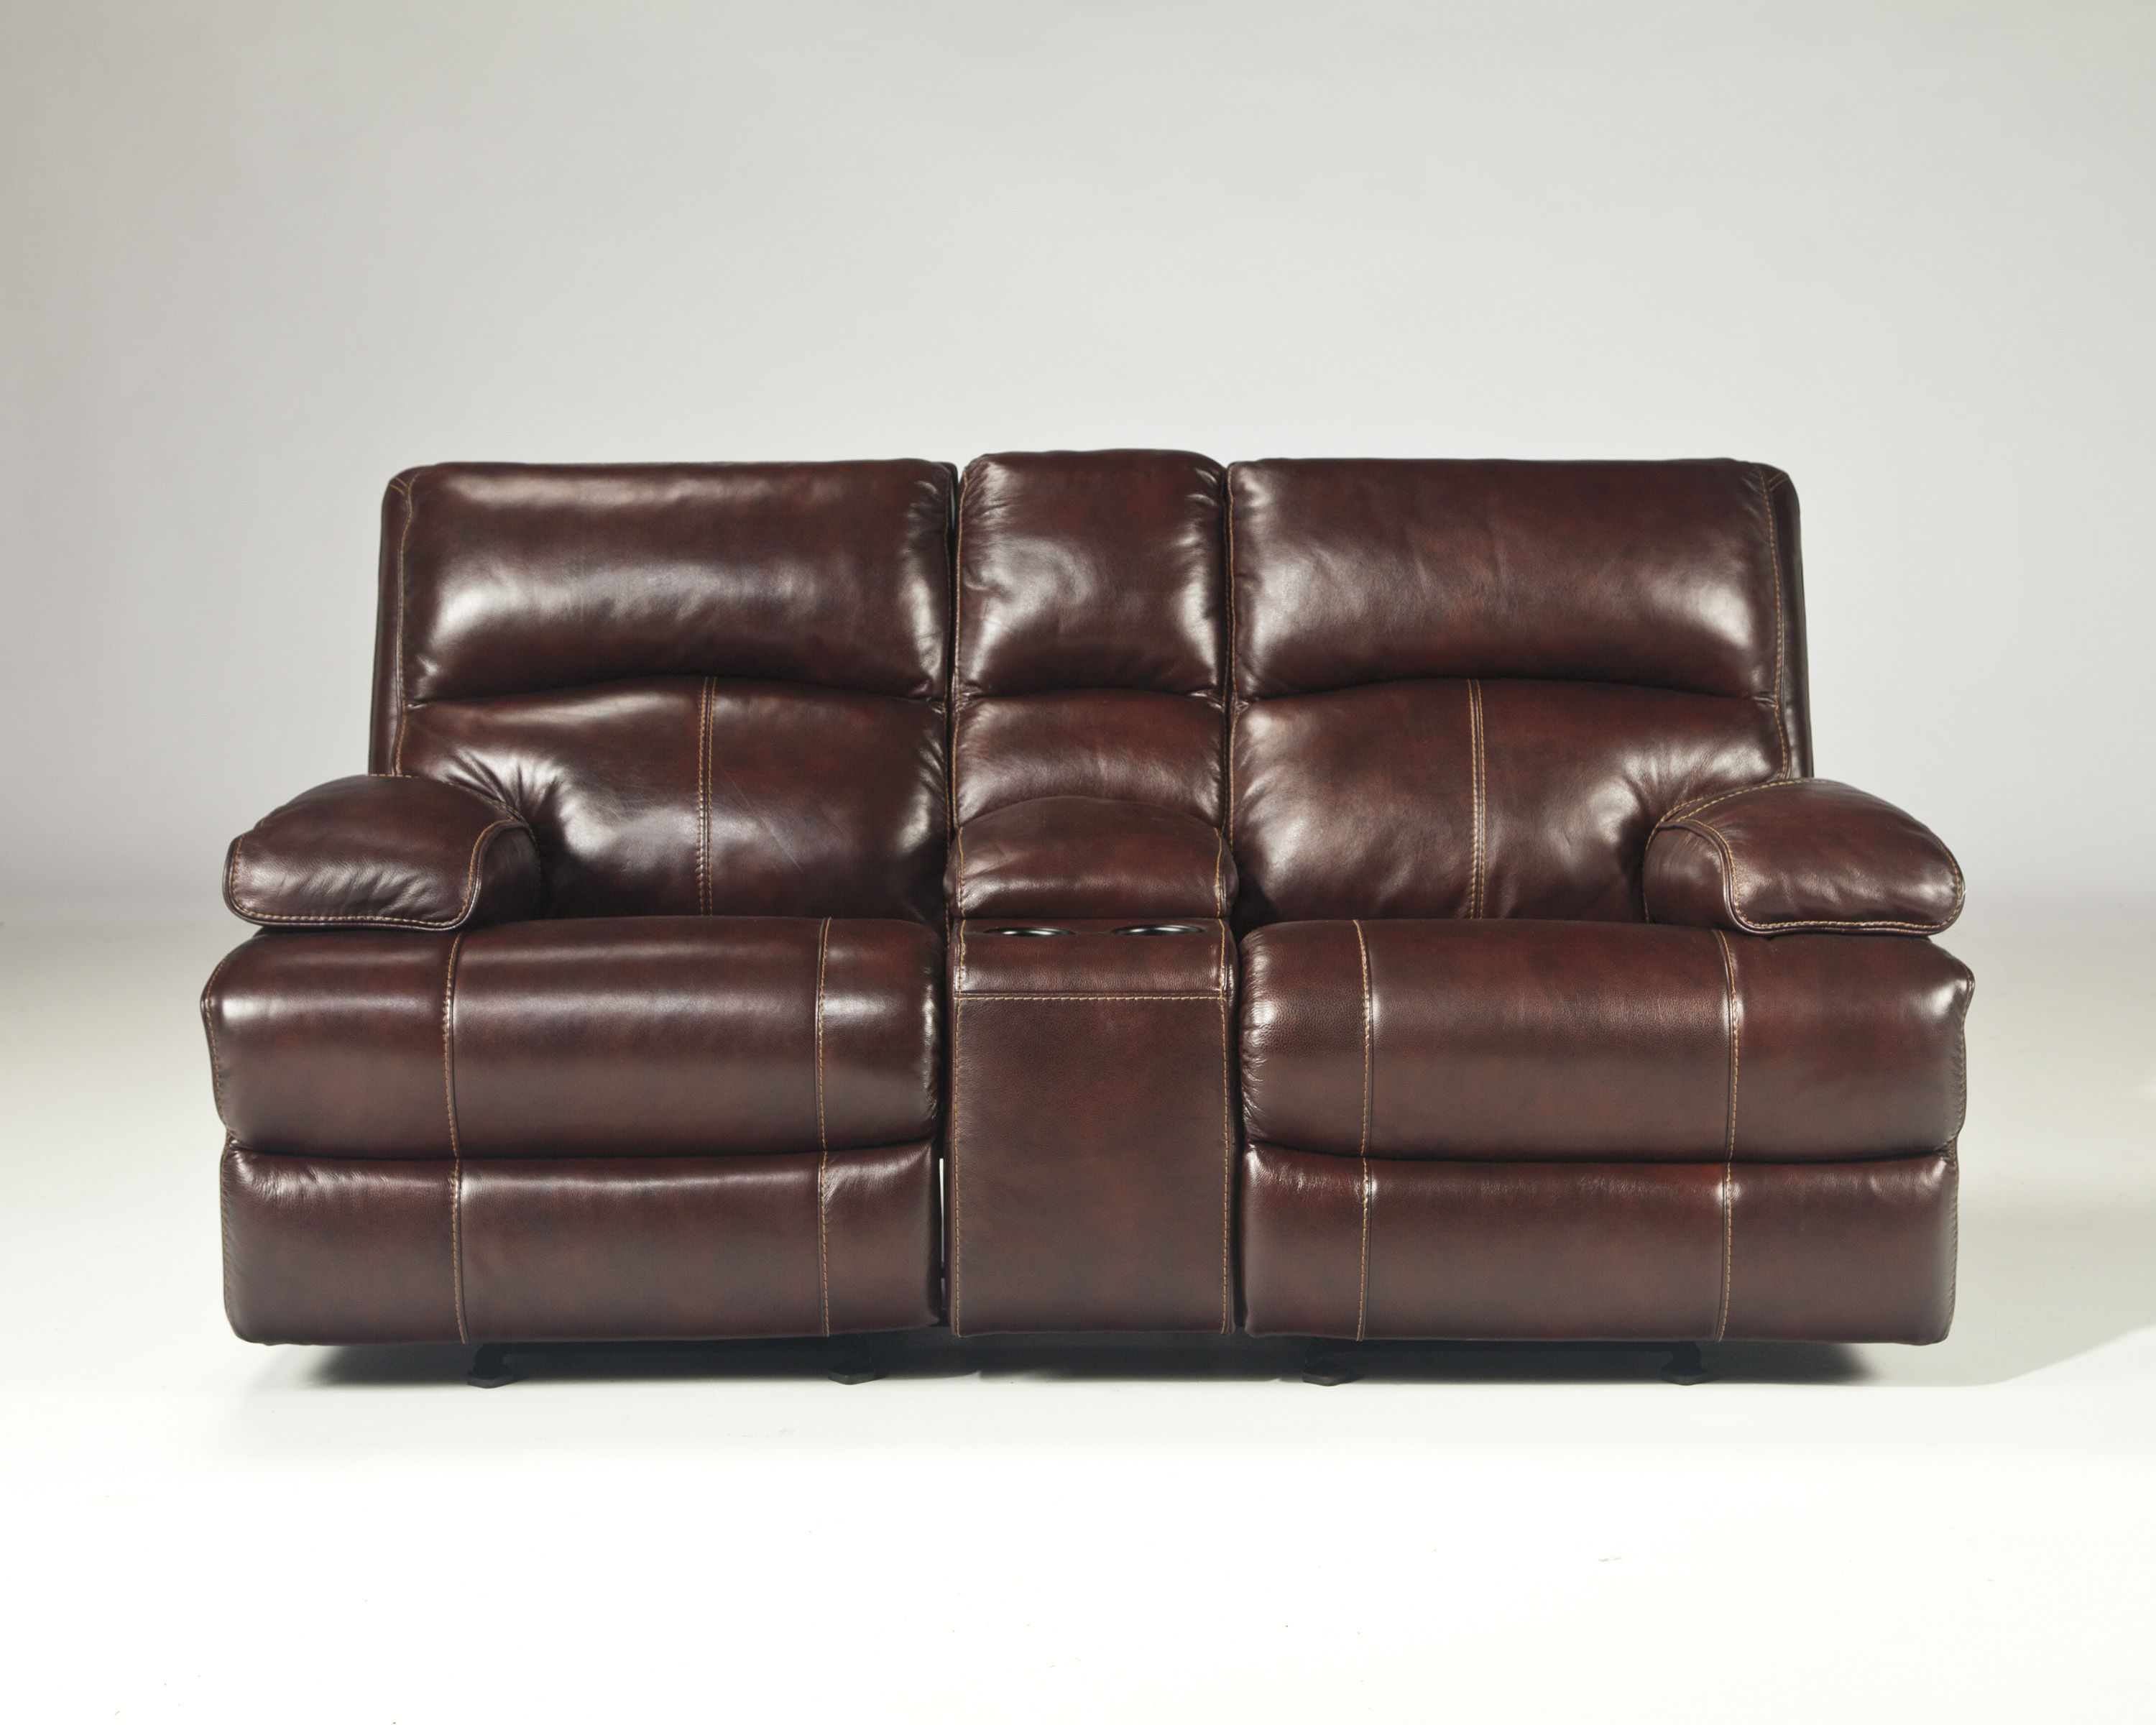 Fine Lensar Burgundy Leather Glider Recliner Loveseat W Console Pdpeps Interior Chair Design Pdpepsorg